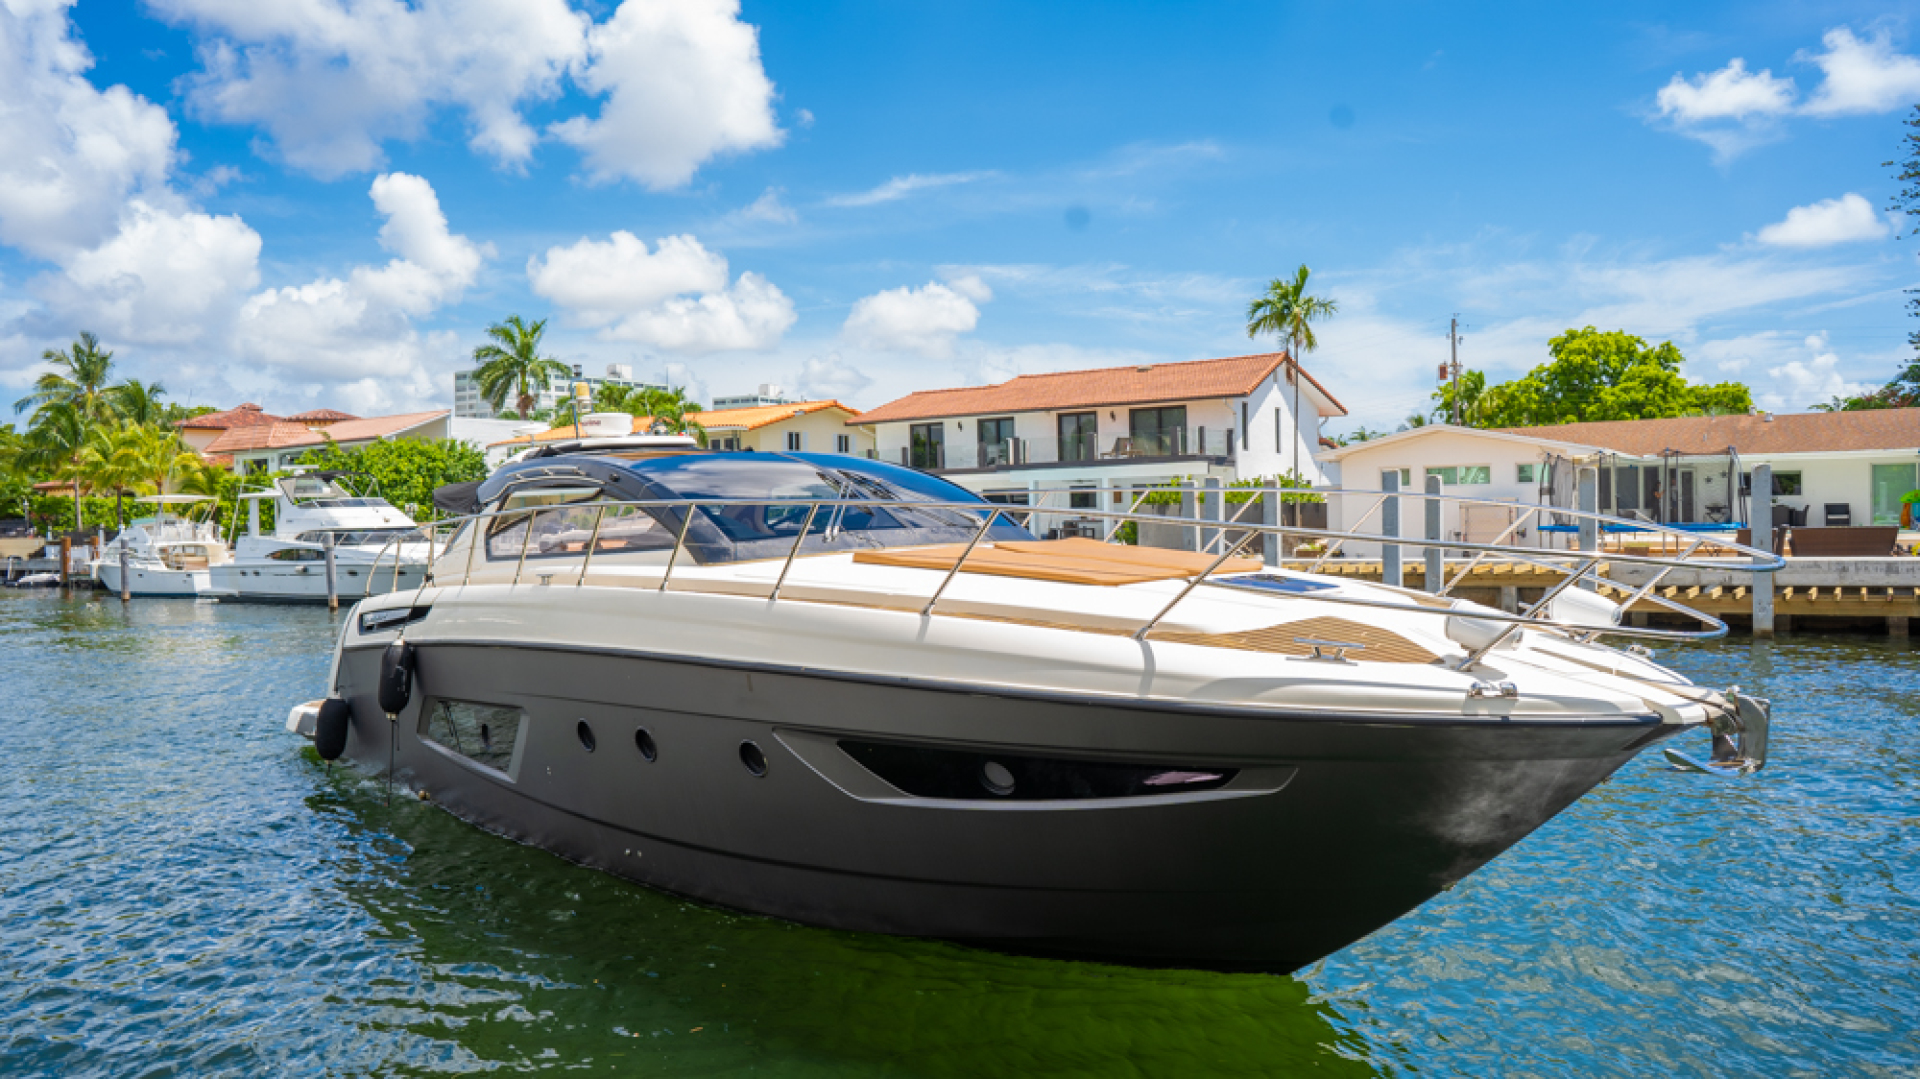 Picture Of: 48' Azimut Atlantis 48 2013 Yacht For Sale   1 of 90